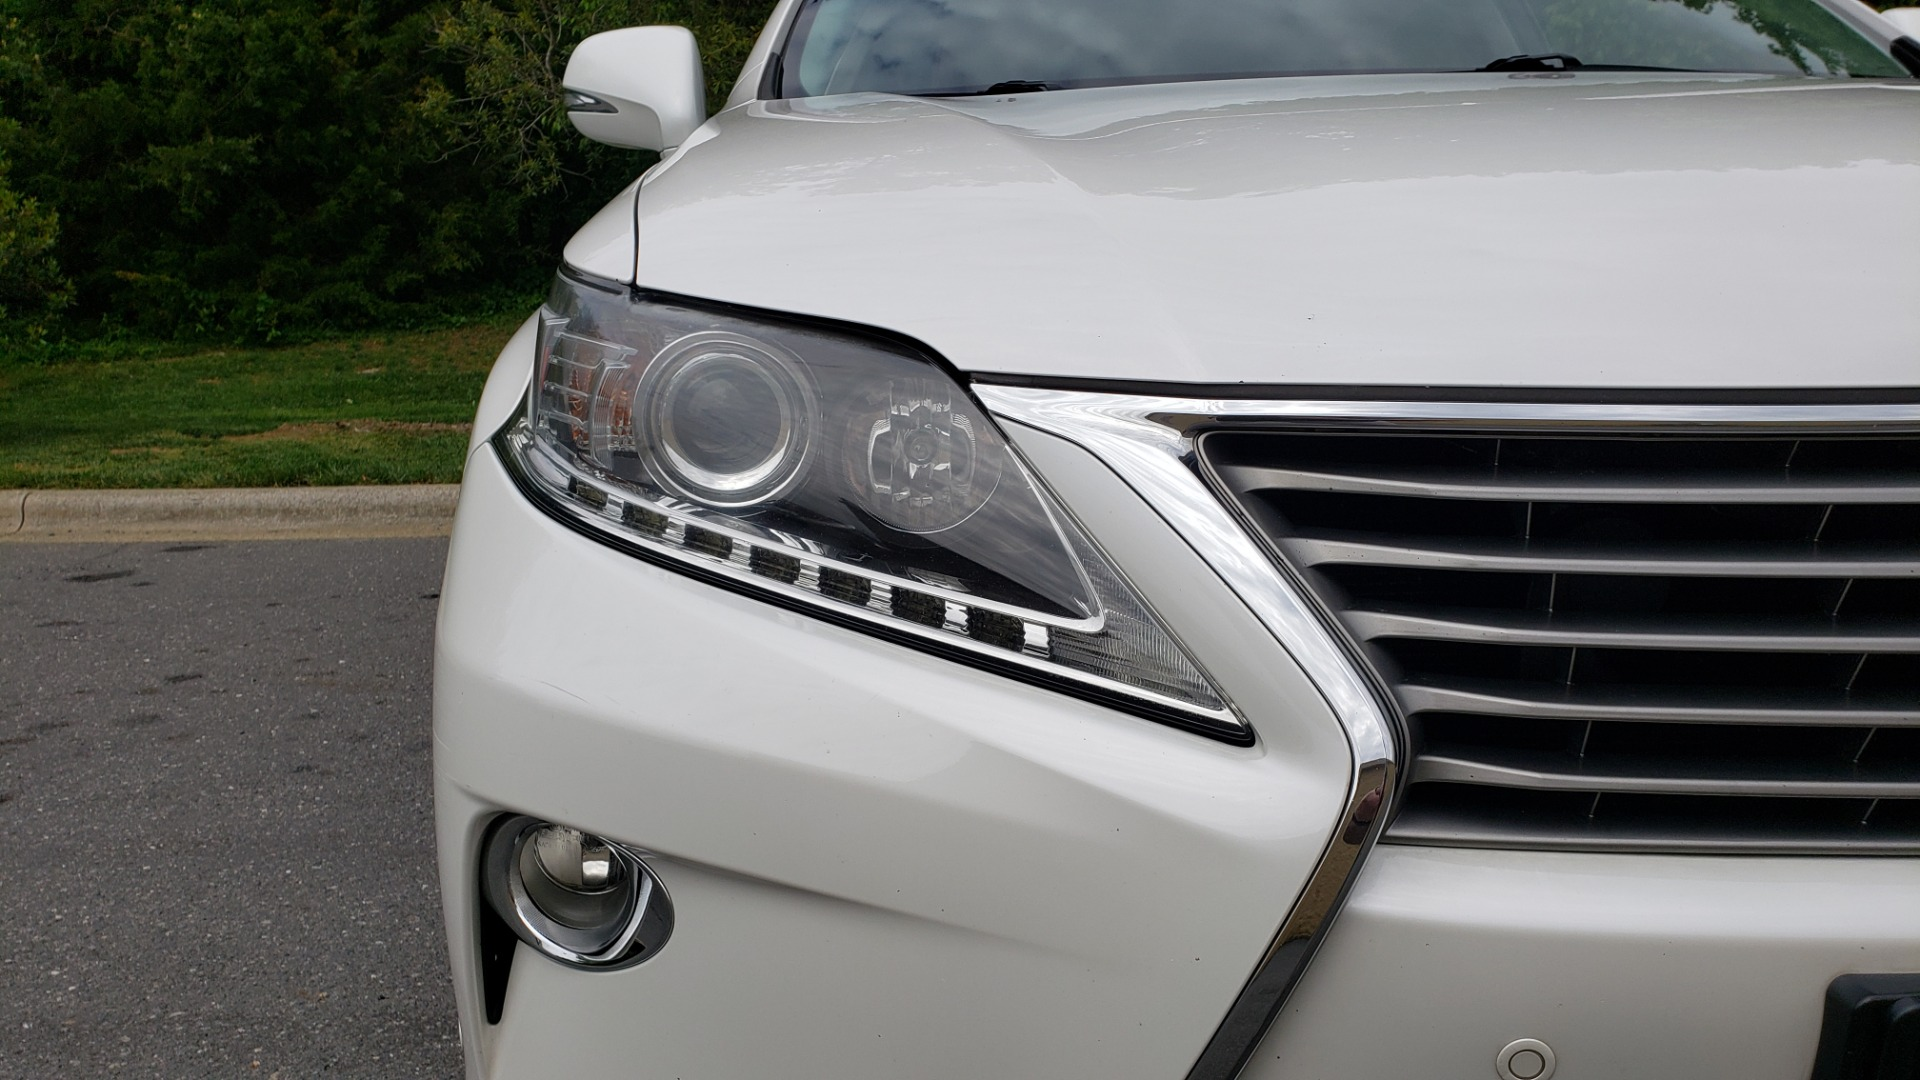 Used 2013 Lexus RX 350 PREMIUM PKG / SUNROOF / BSM / PARK ASST / REARVIEW for sale Sold at Formula Imports in Charlotte NC 28227 21